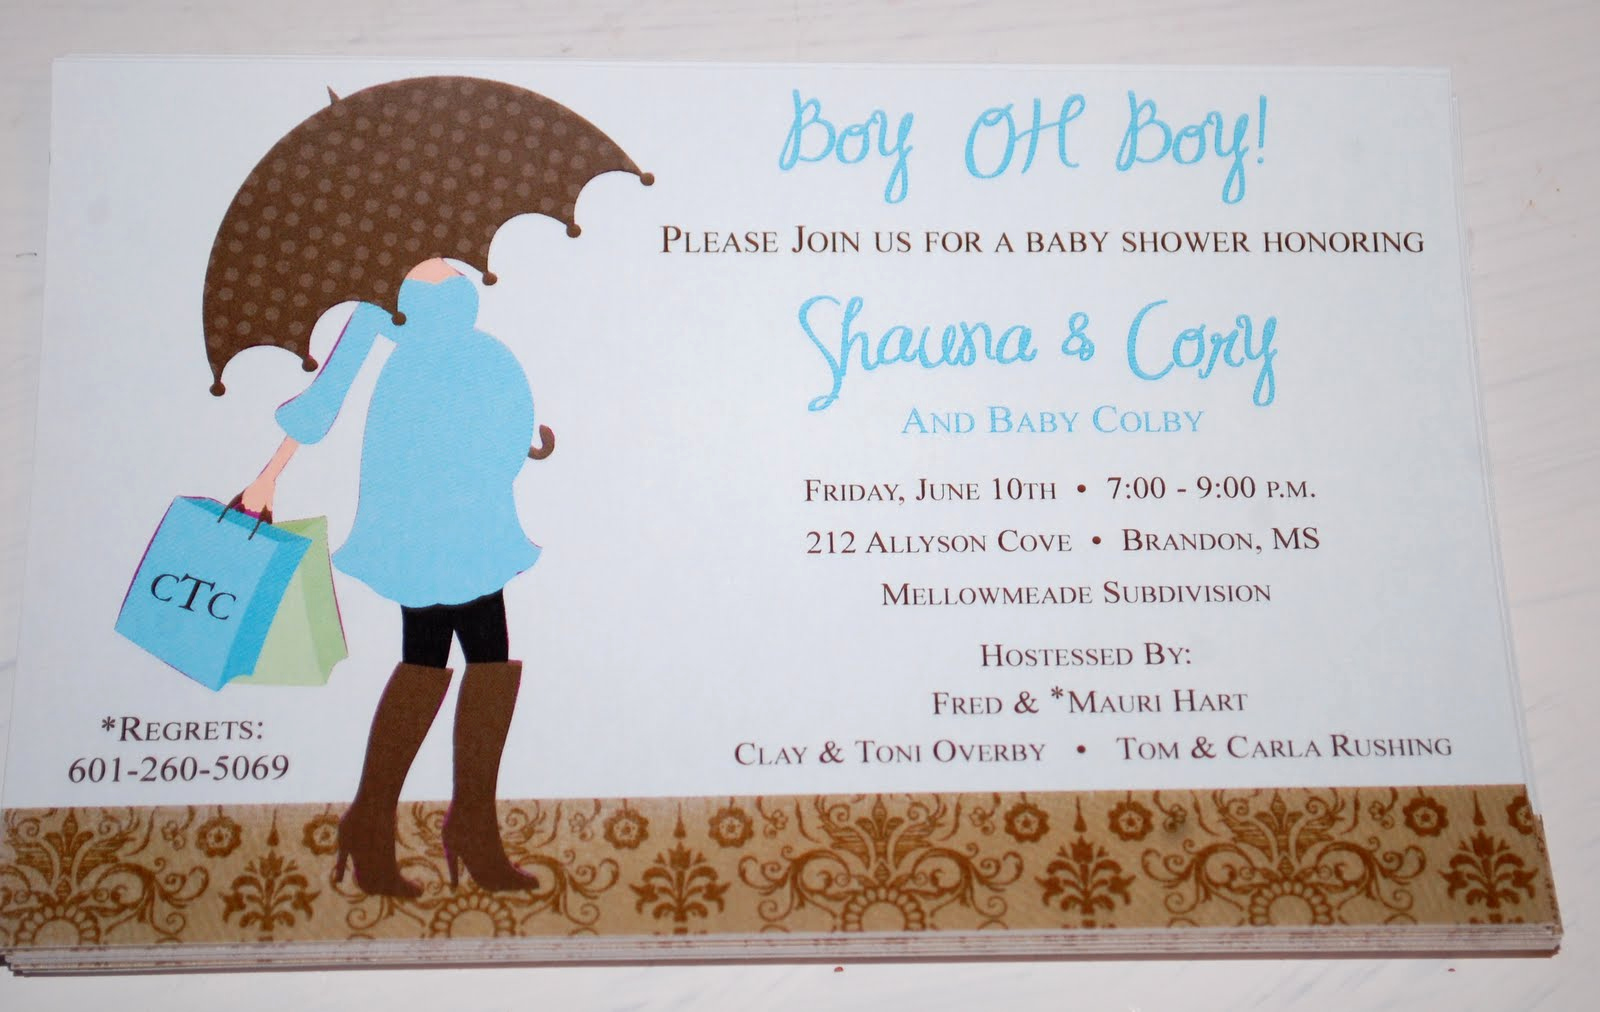 Baby Shower Invitations Templates Editable Luxury Free Editable Baby Shower Invitation Templates